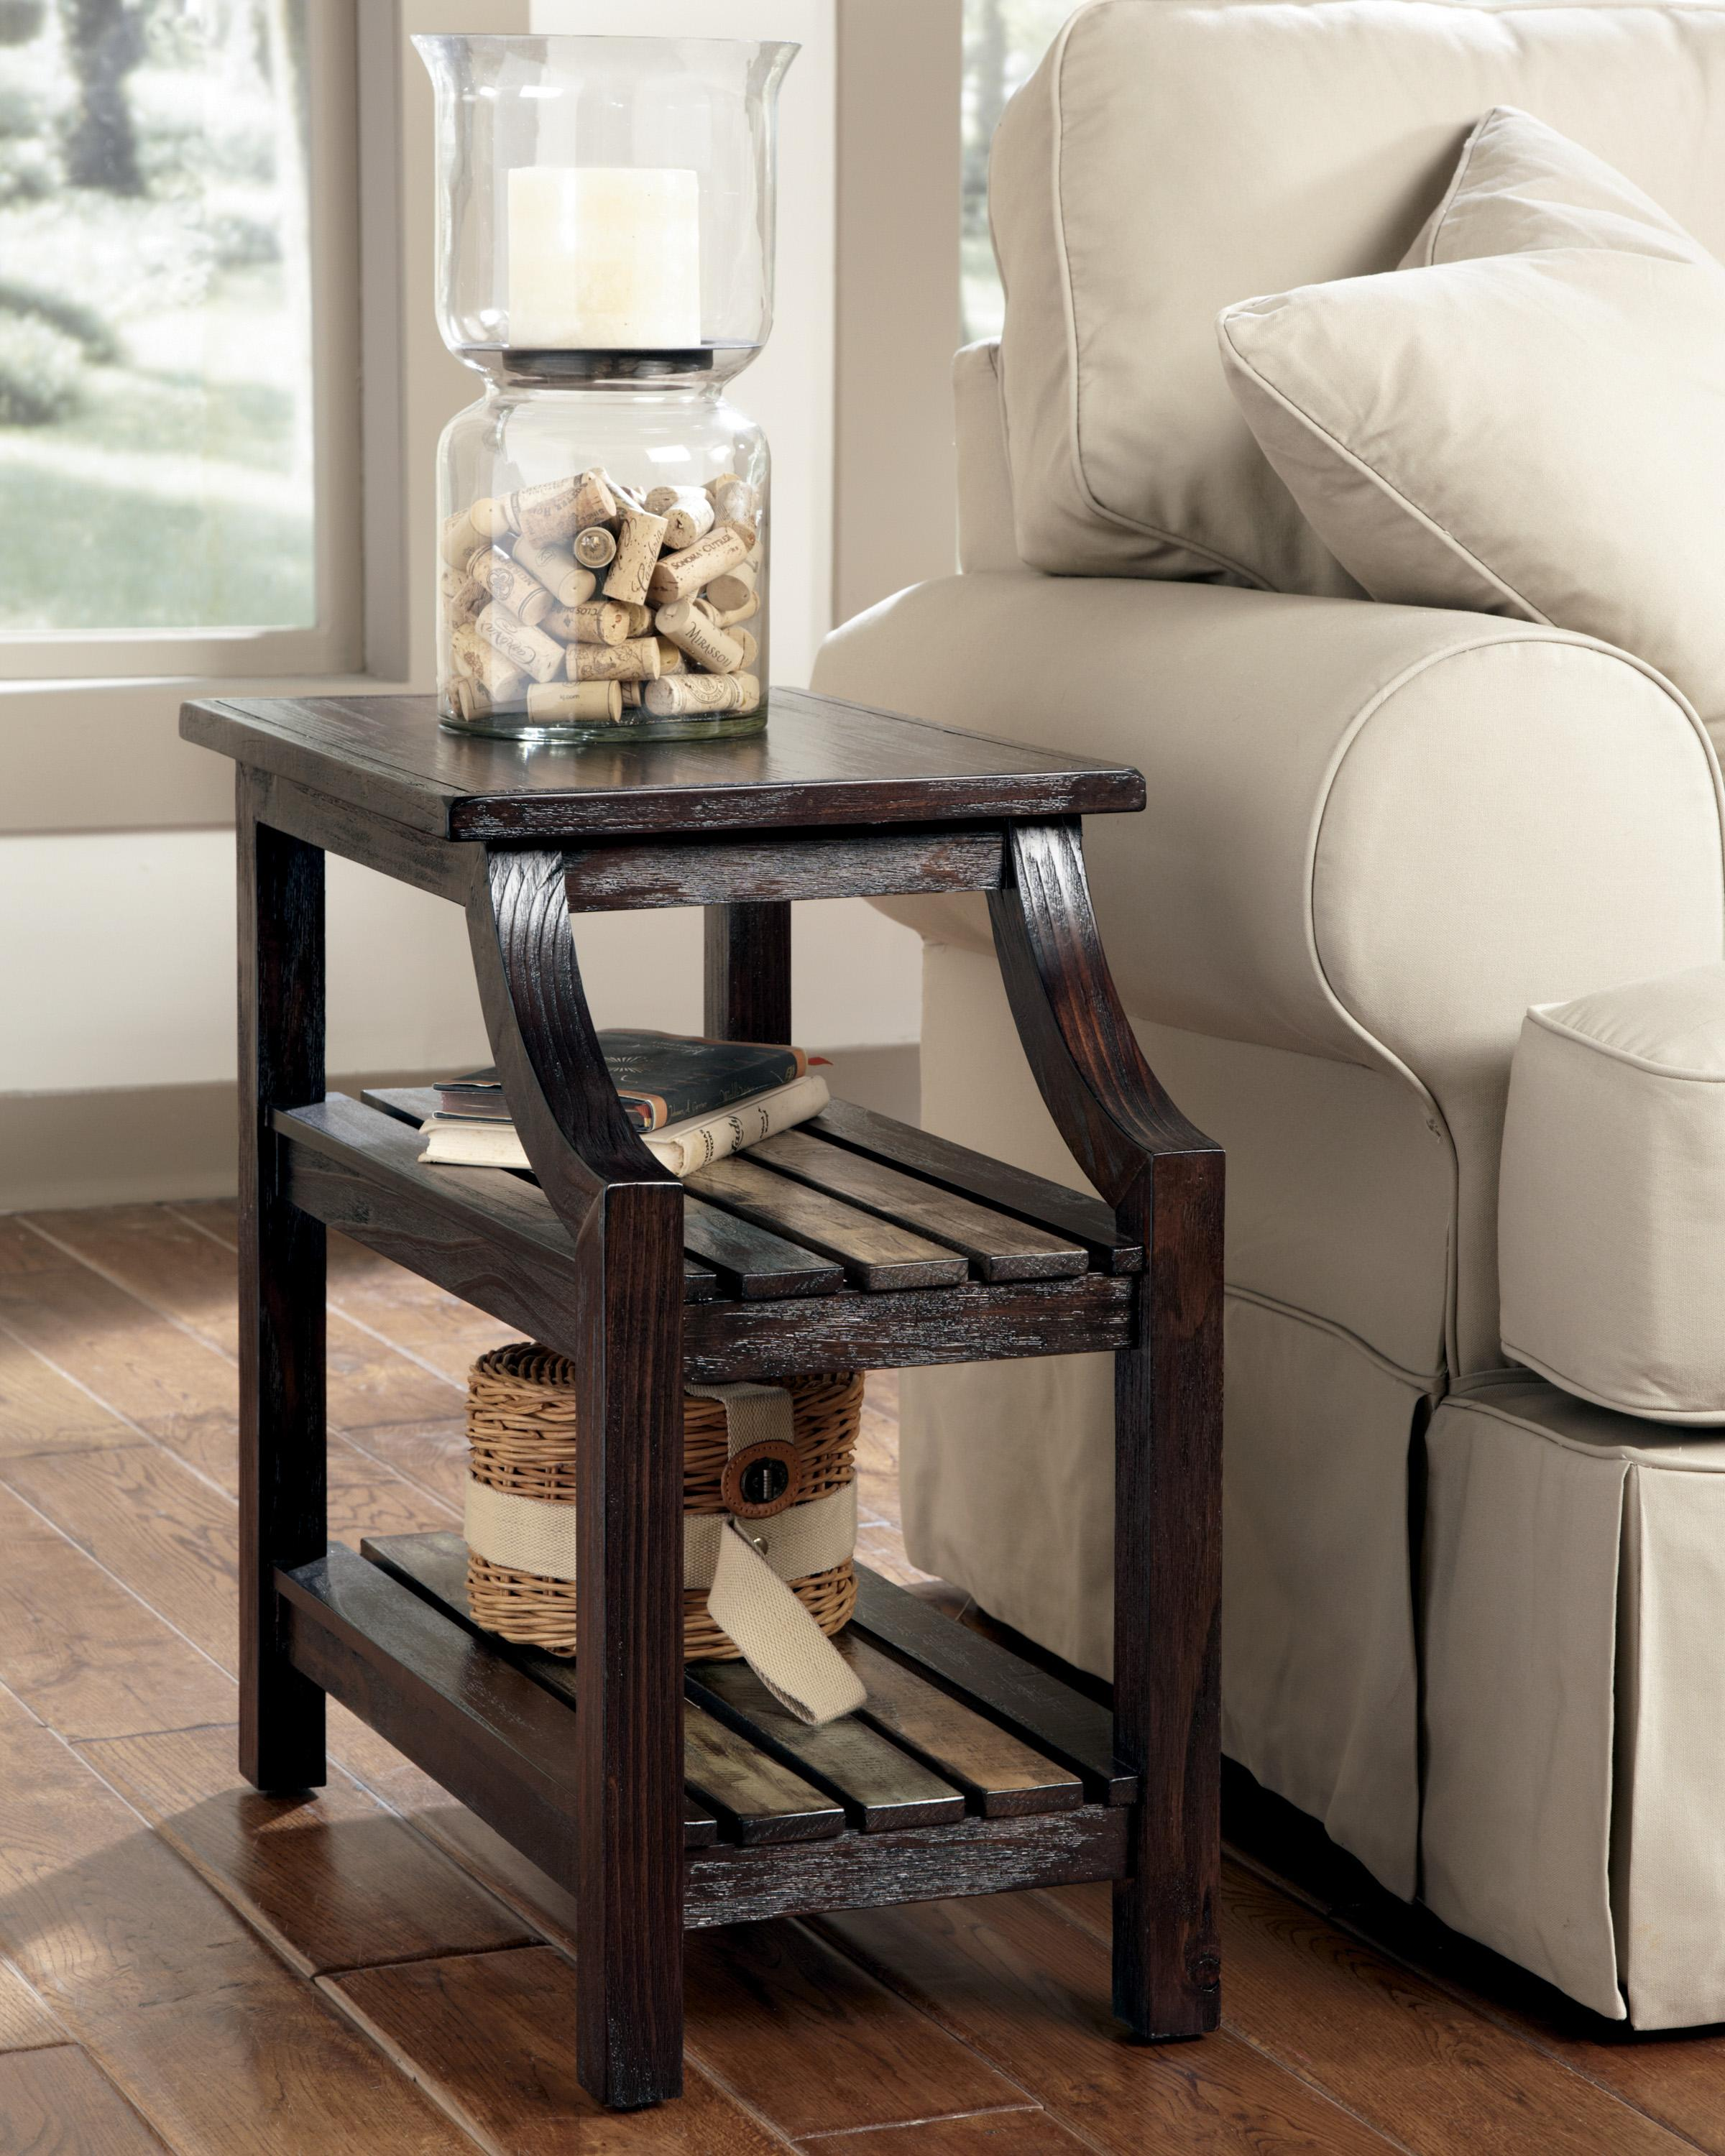 Chairside End Table with Colorful Plank Shelves by Signature